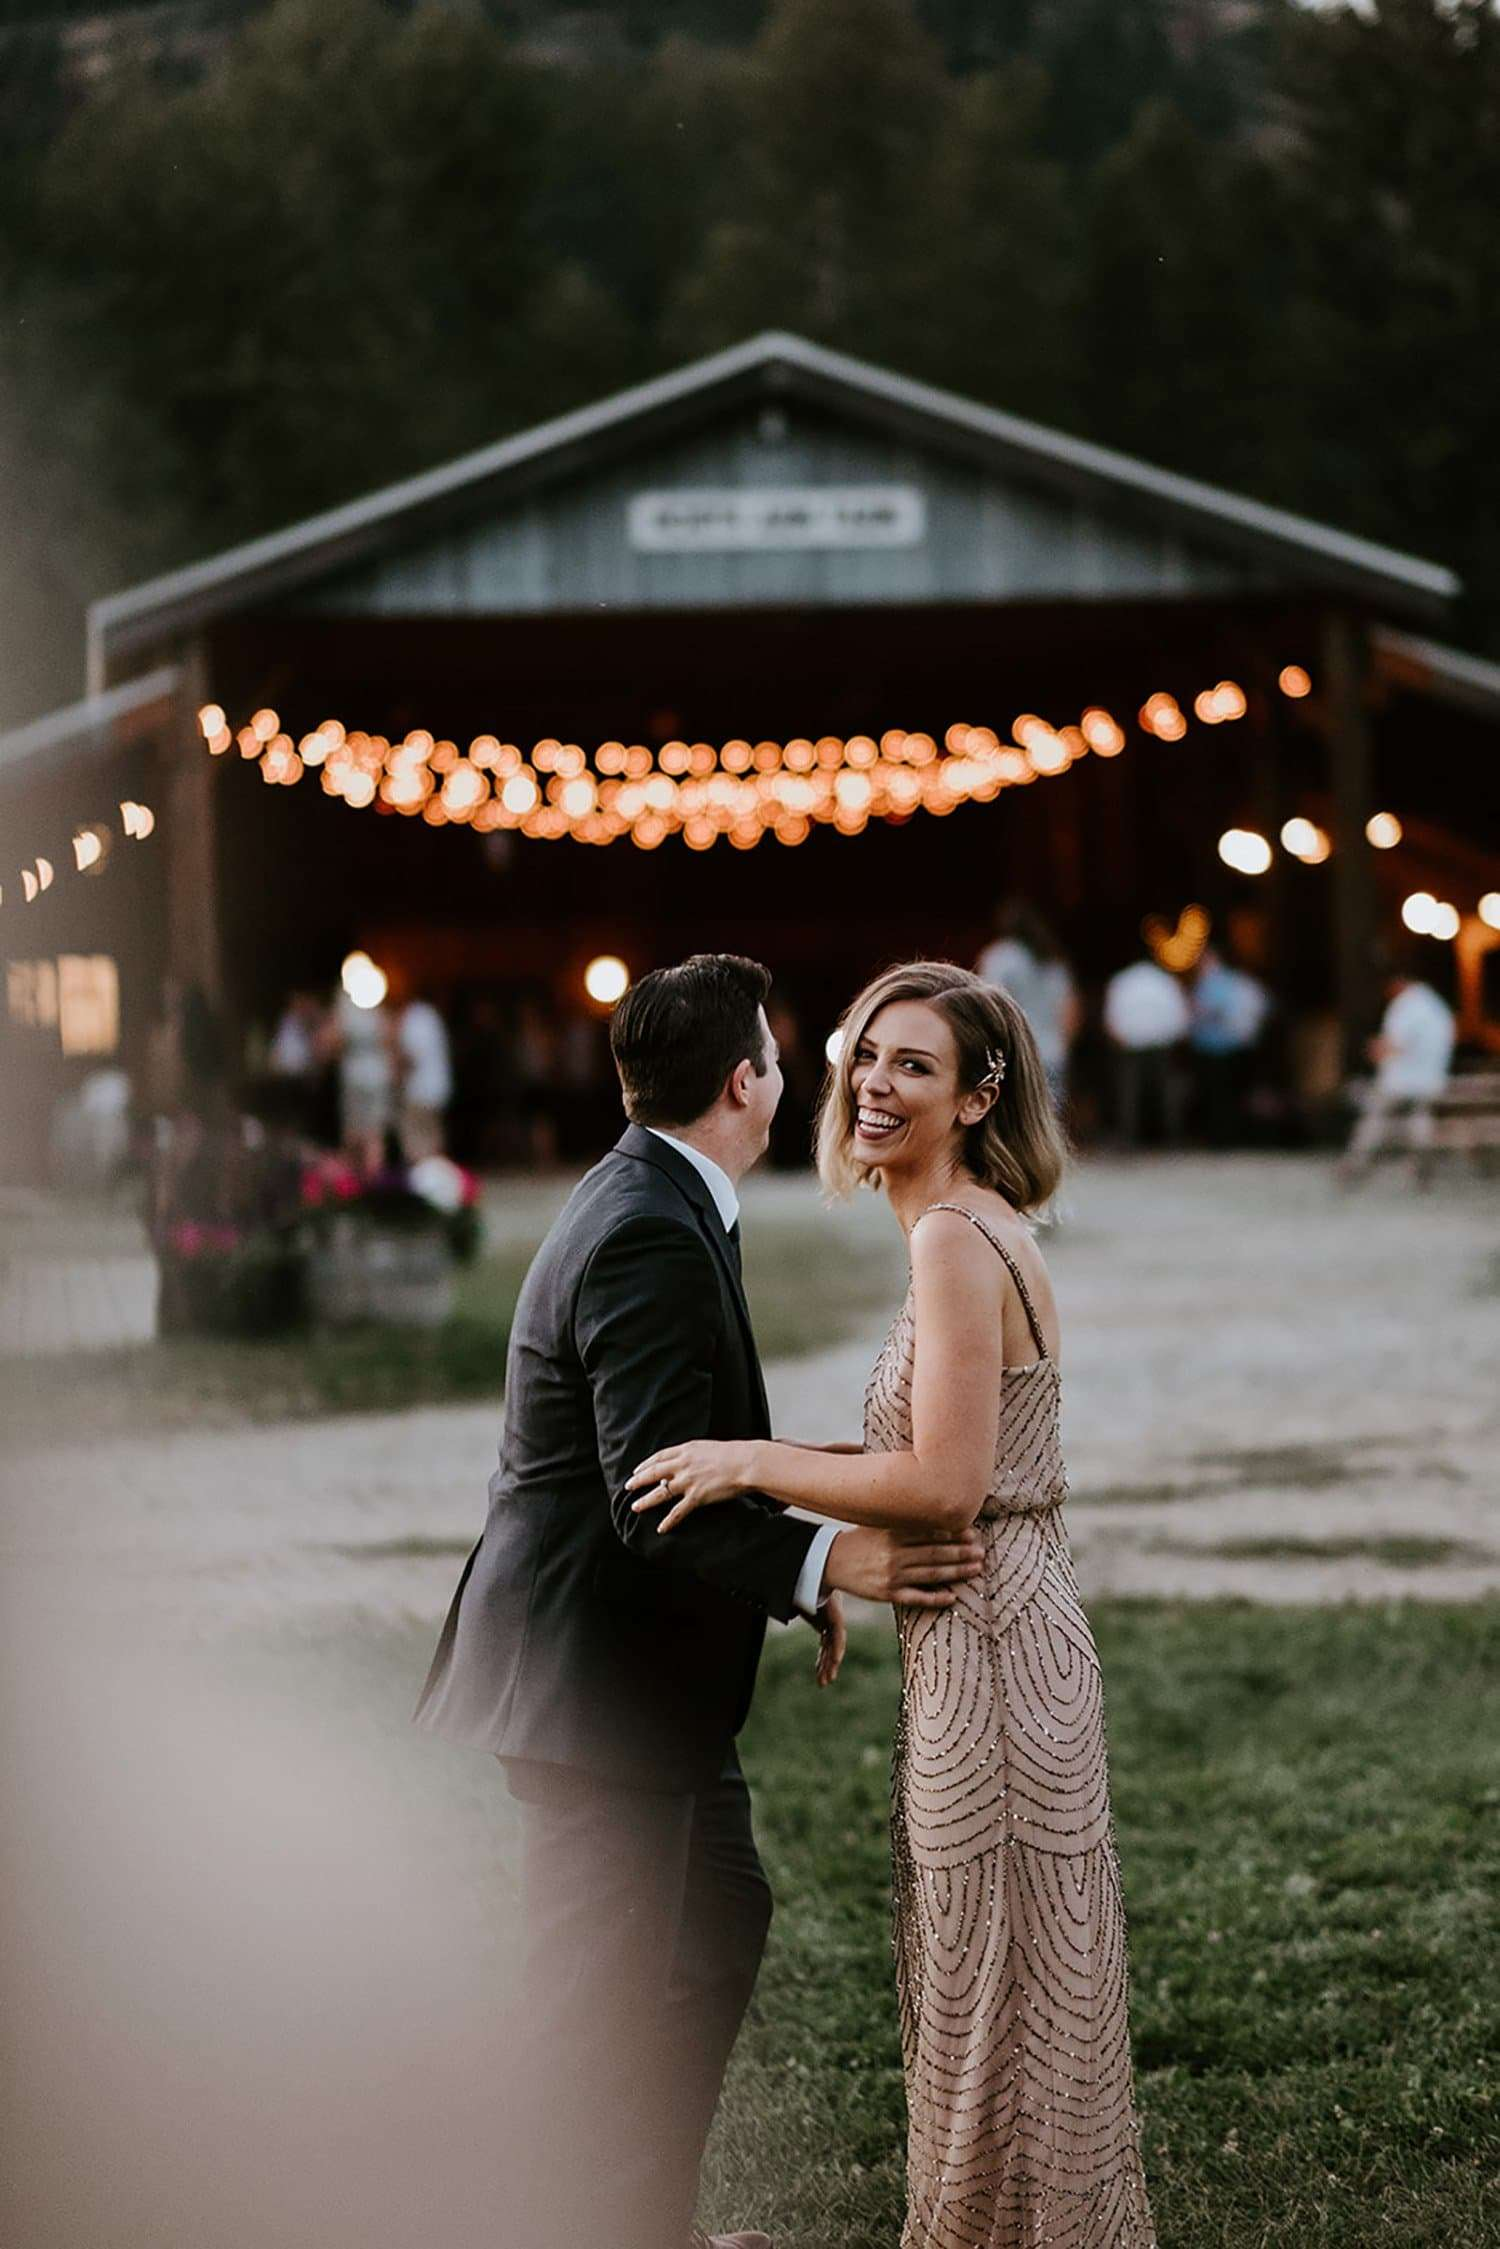 Bride and Groom at North Arm Farms wedding.